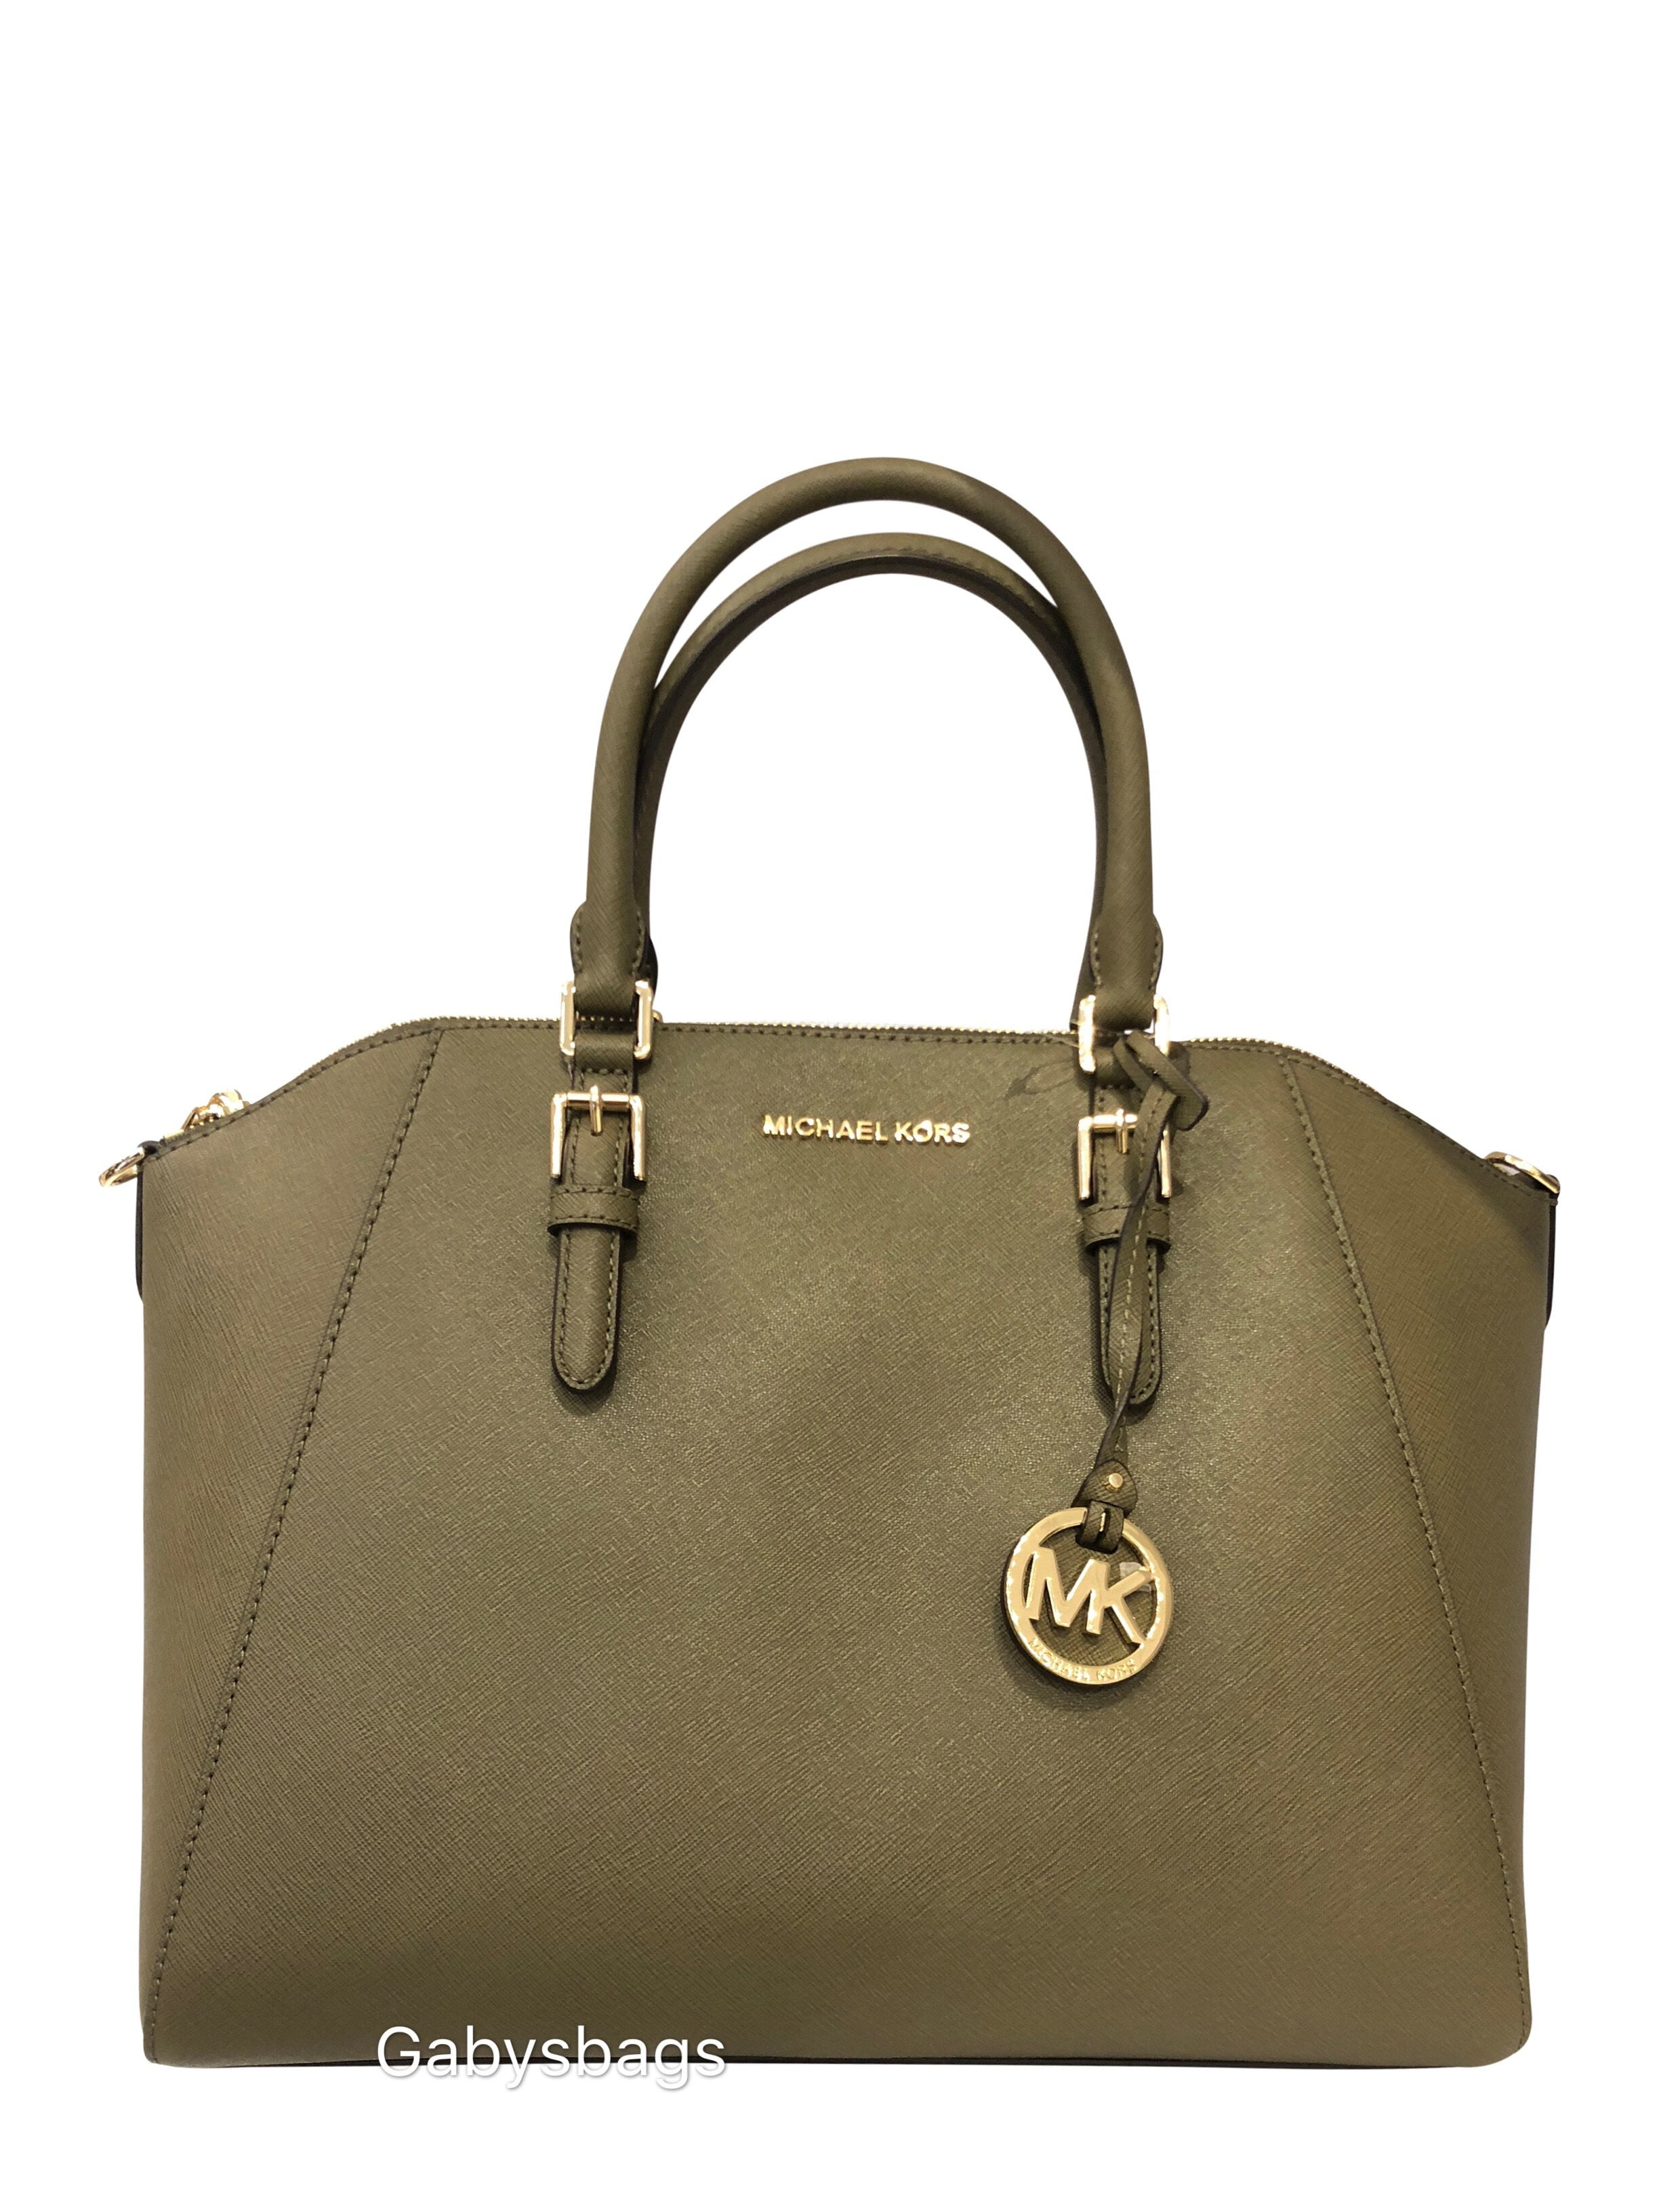 849c961f2ffd Michael Kors Large Ciara Top Zip Satchel Bag Olive Green - Walmart.com